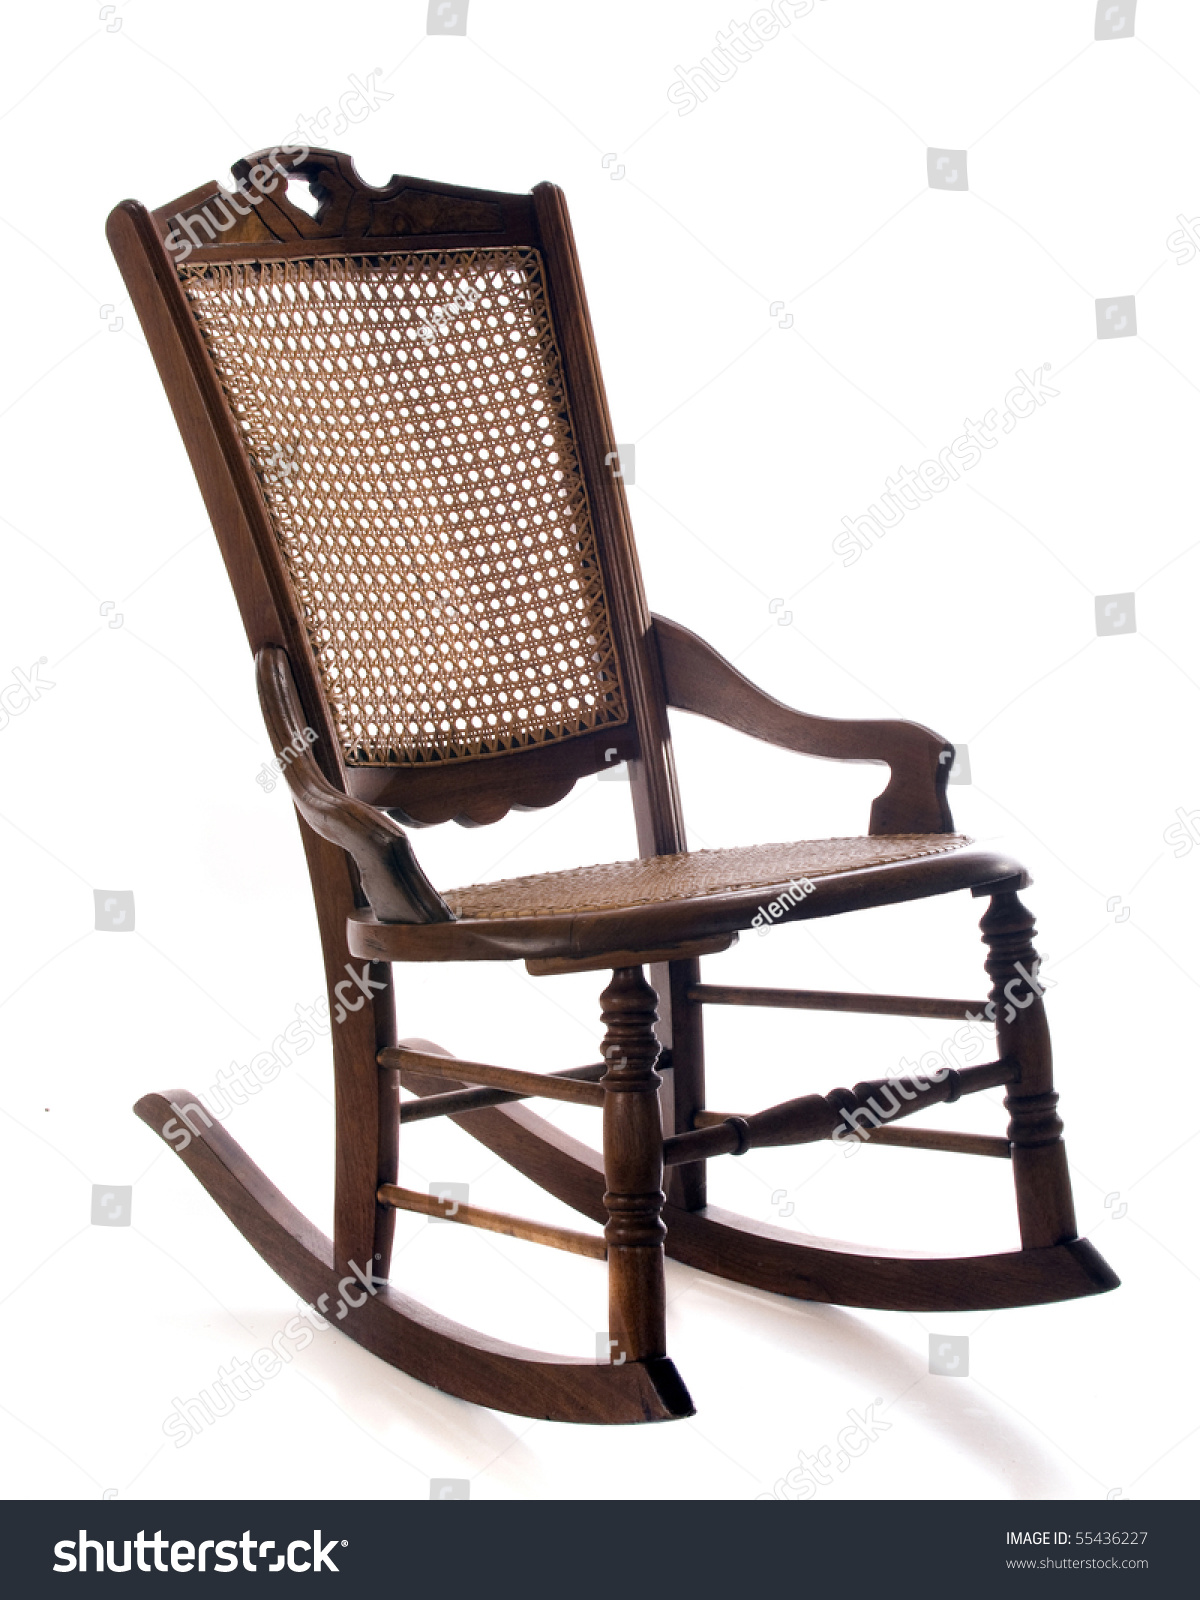 Antique cane chair styles - An Antique Cane Rocking Chair Isolated On White